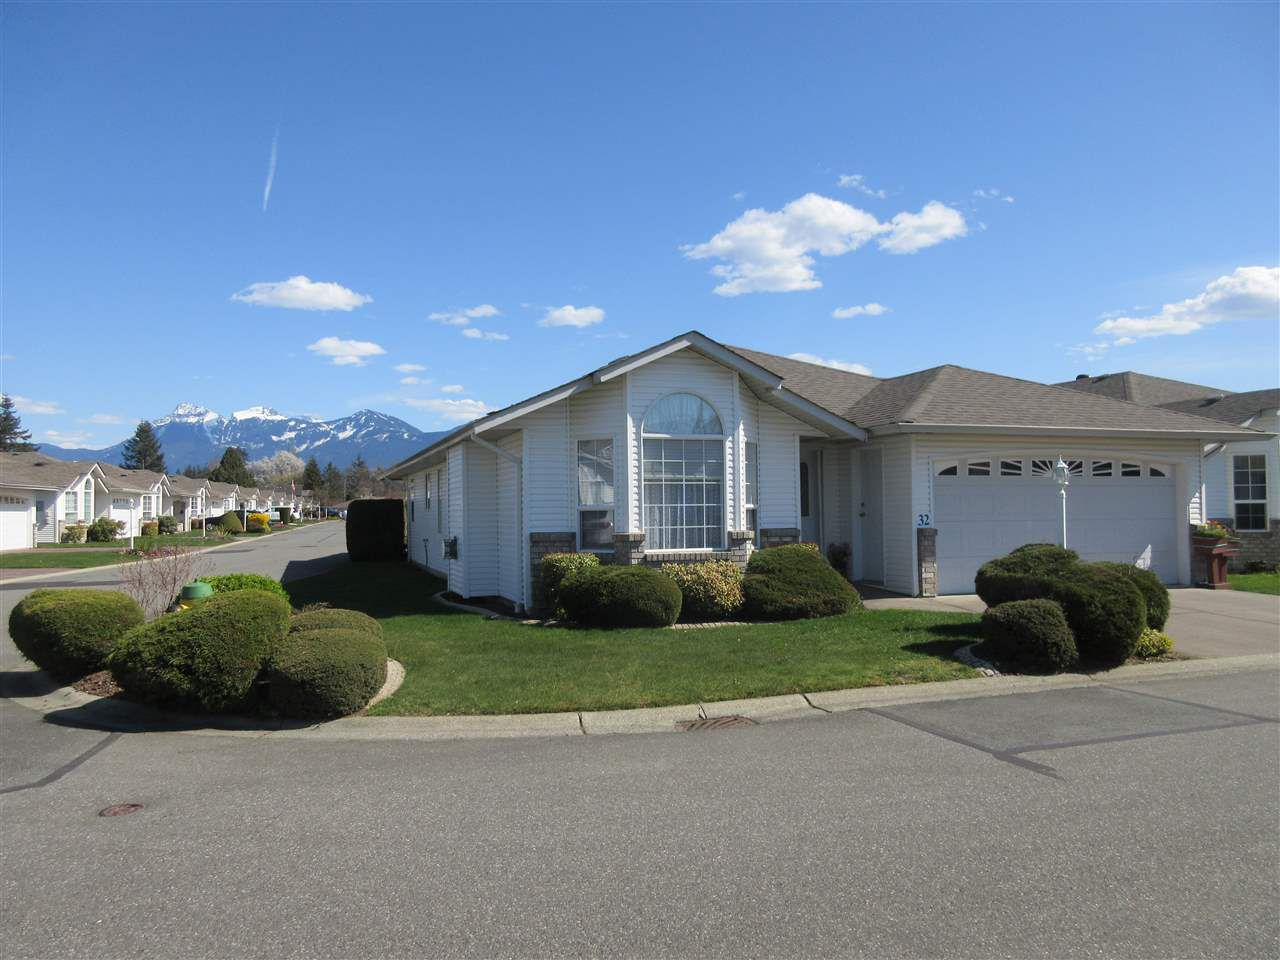 "Main Photo: 32 9102 HAZEL Street in Chilliwack: Chilliwack E Young-Yale House for sale in ""THE HORIZON"" : MLS®# R2356831"